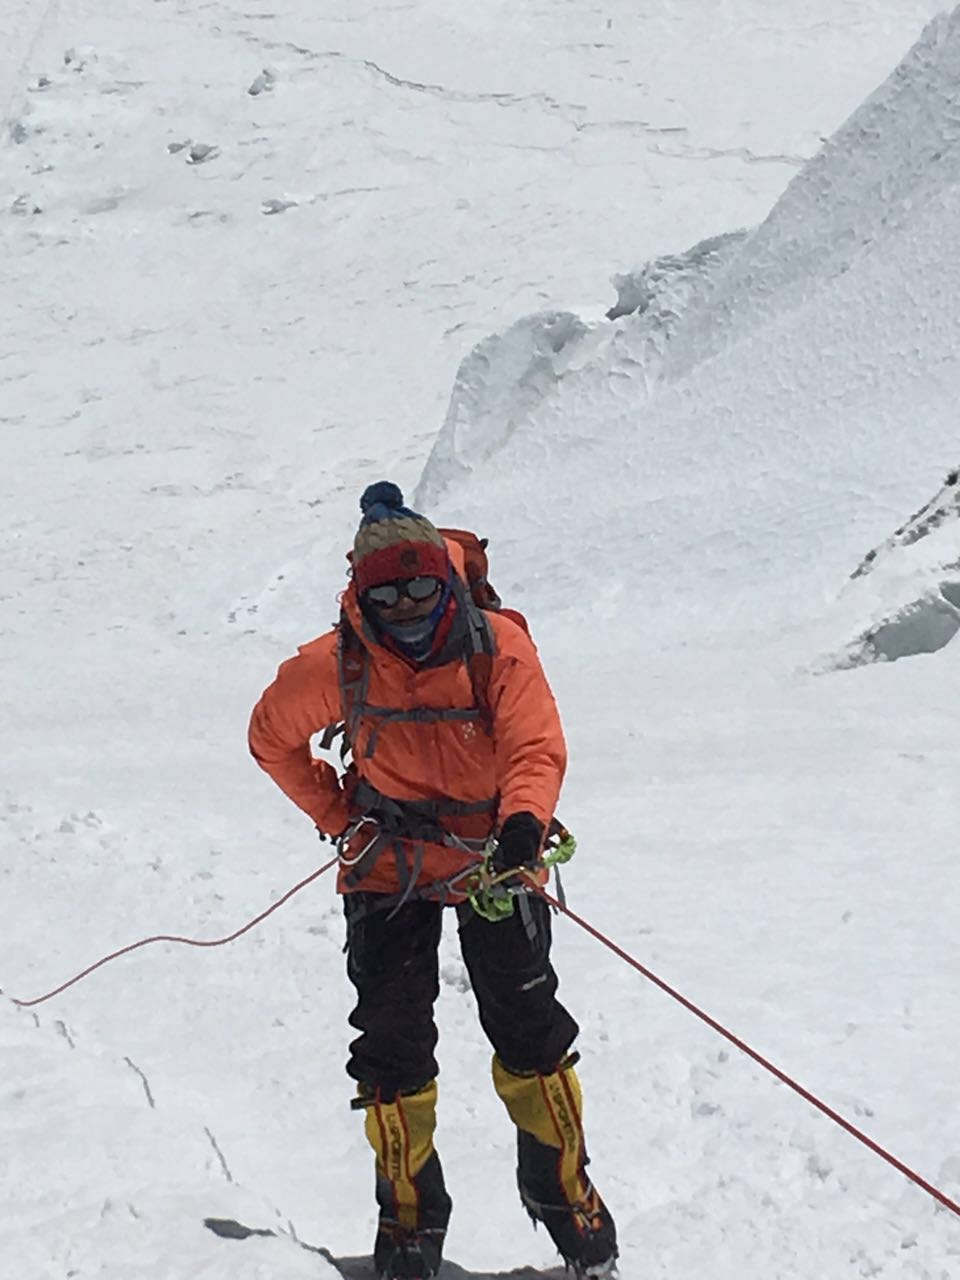 On her way to scaling Mt Everest